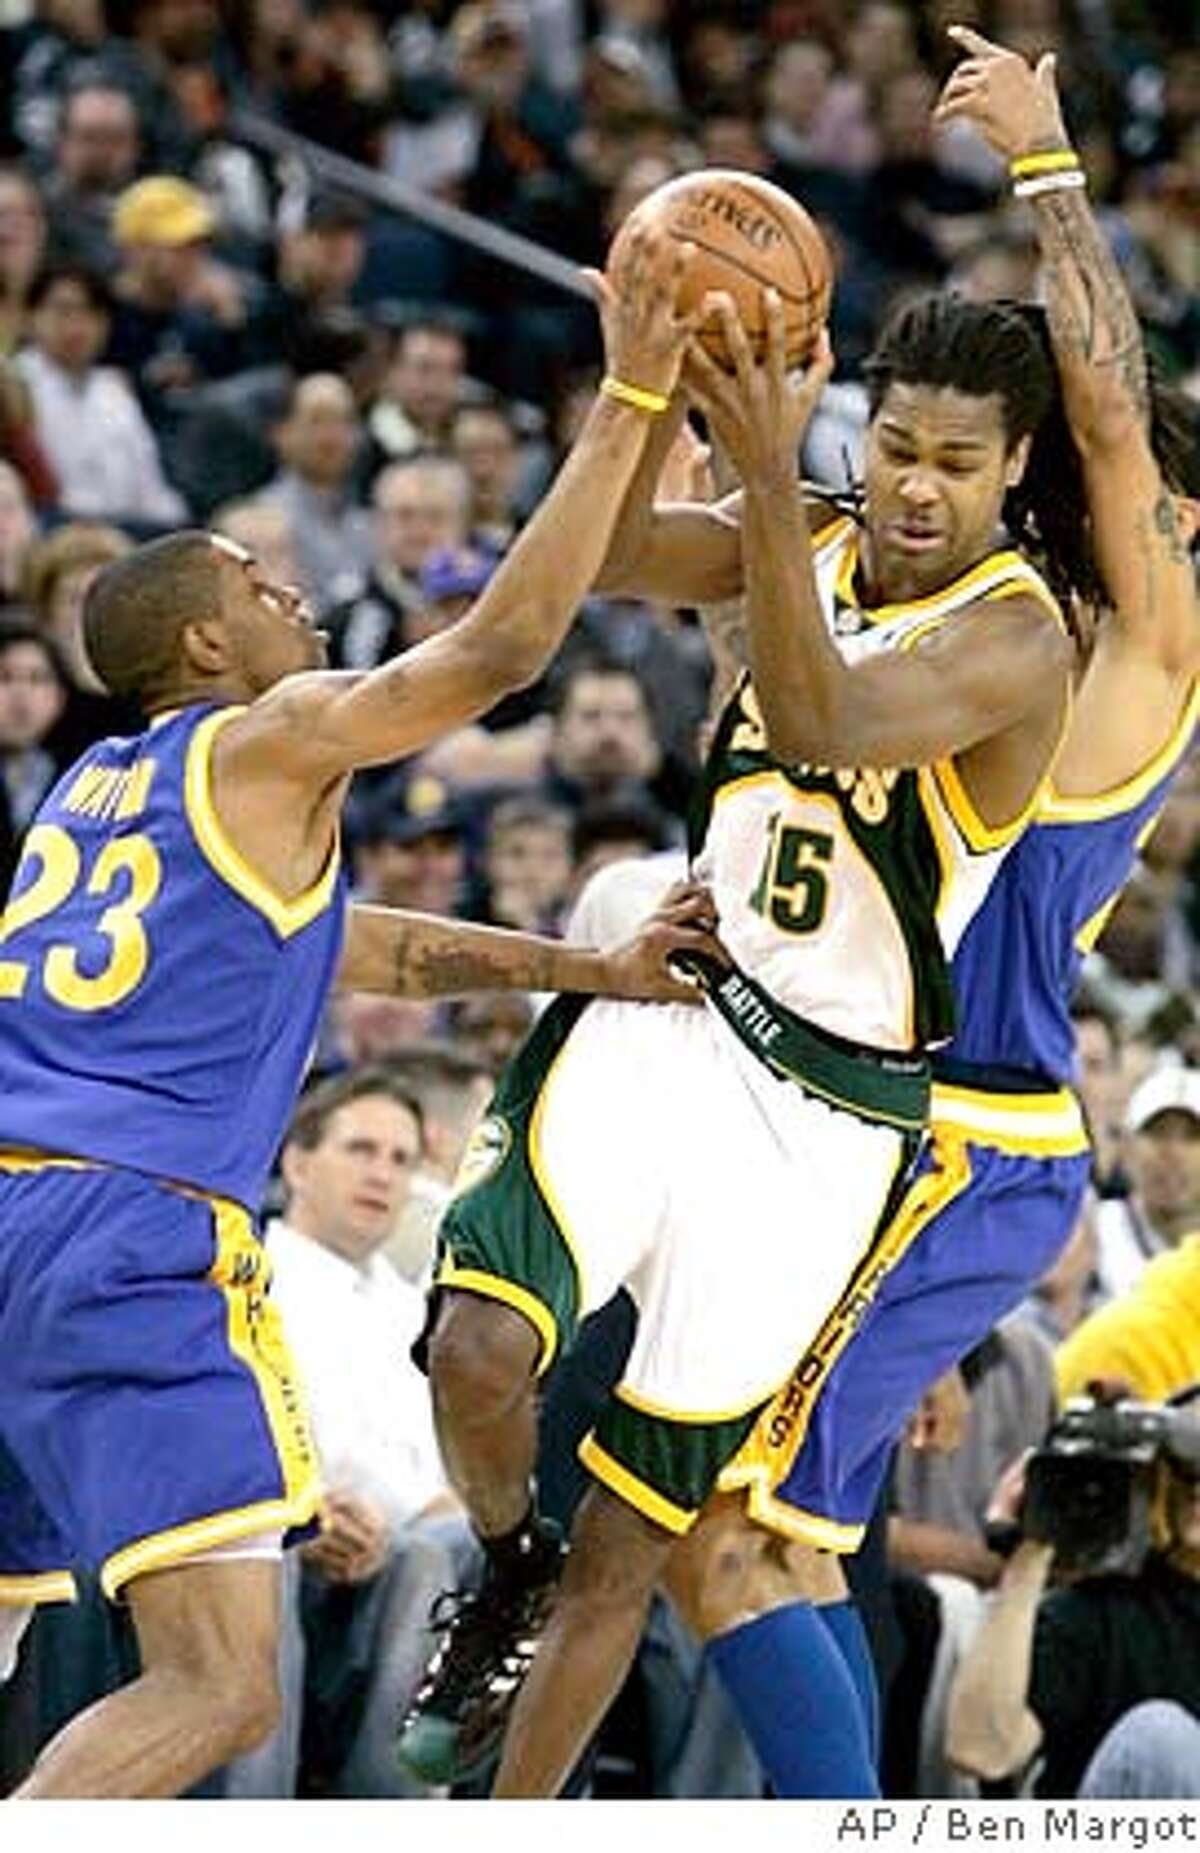 Golden State Warriors' C.J. Watson (23) guards against Seattle SuperSonics' Mickael Gelabale (15), of France, during the first half of an NBA basketball game Tuesday, Feb. 26, 2008, in Oakland, Calif. (AP Photo/Ben Margot)